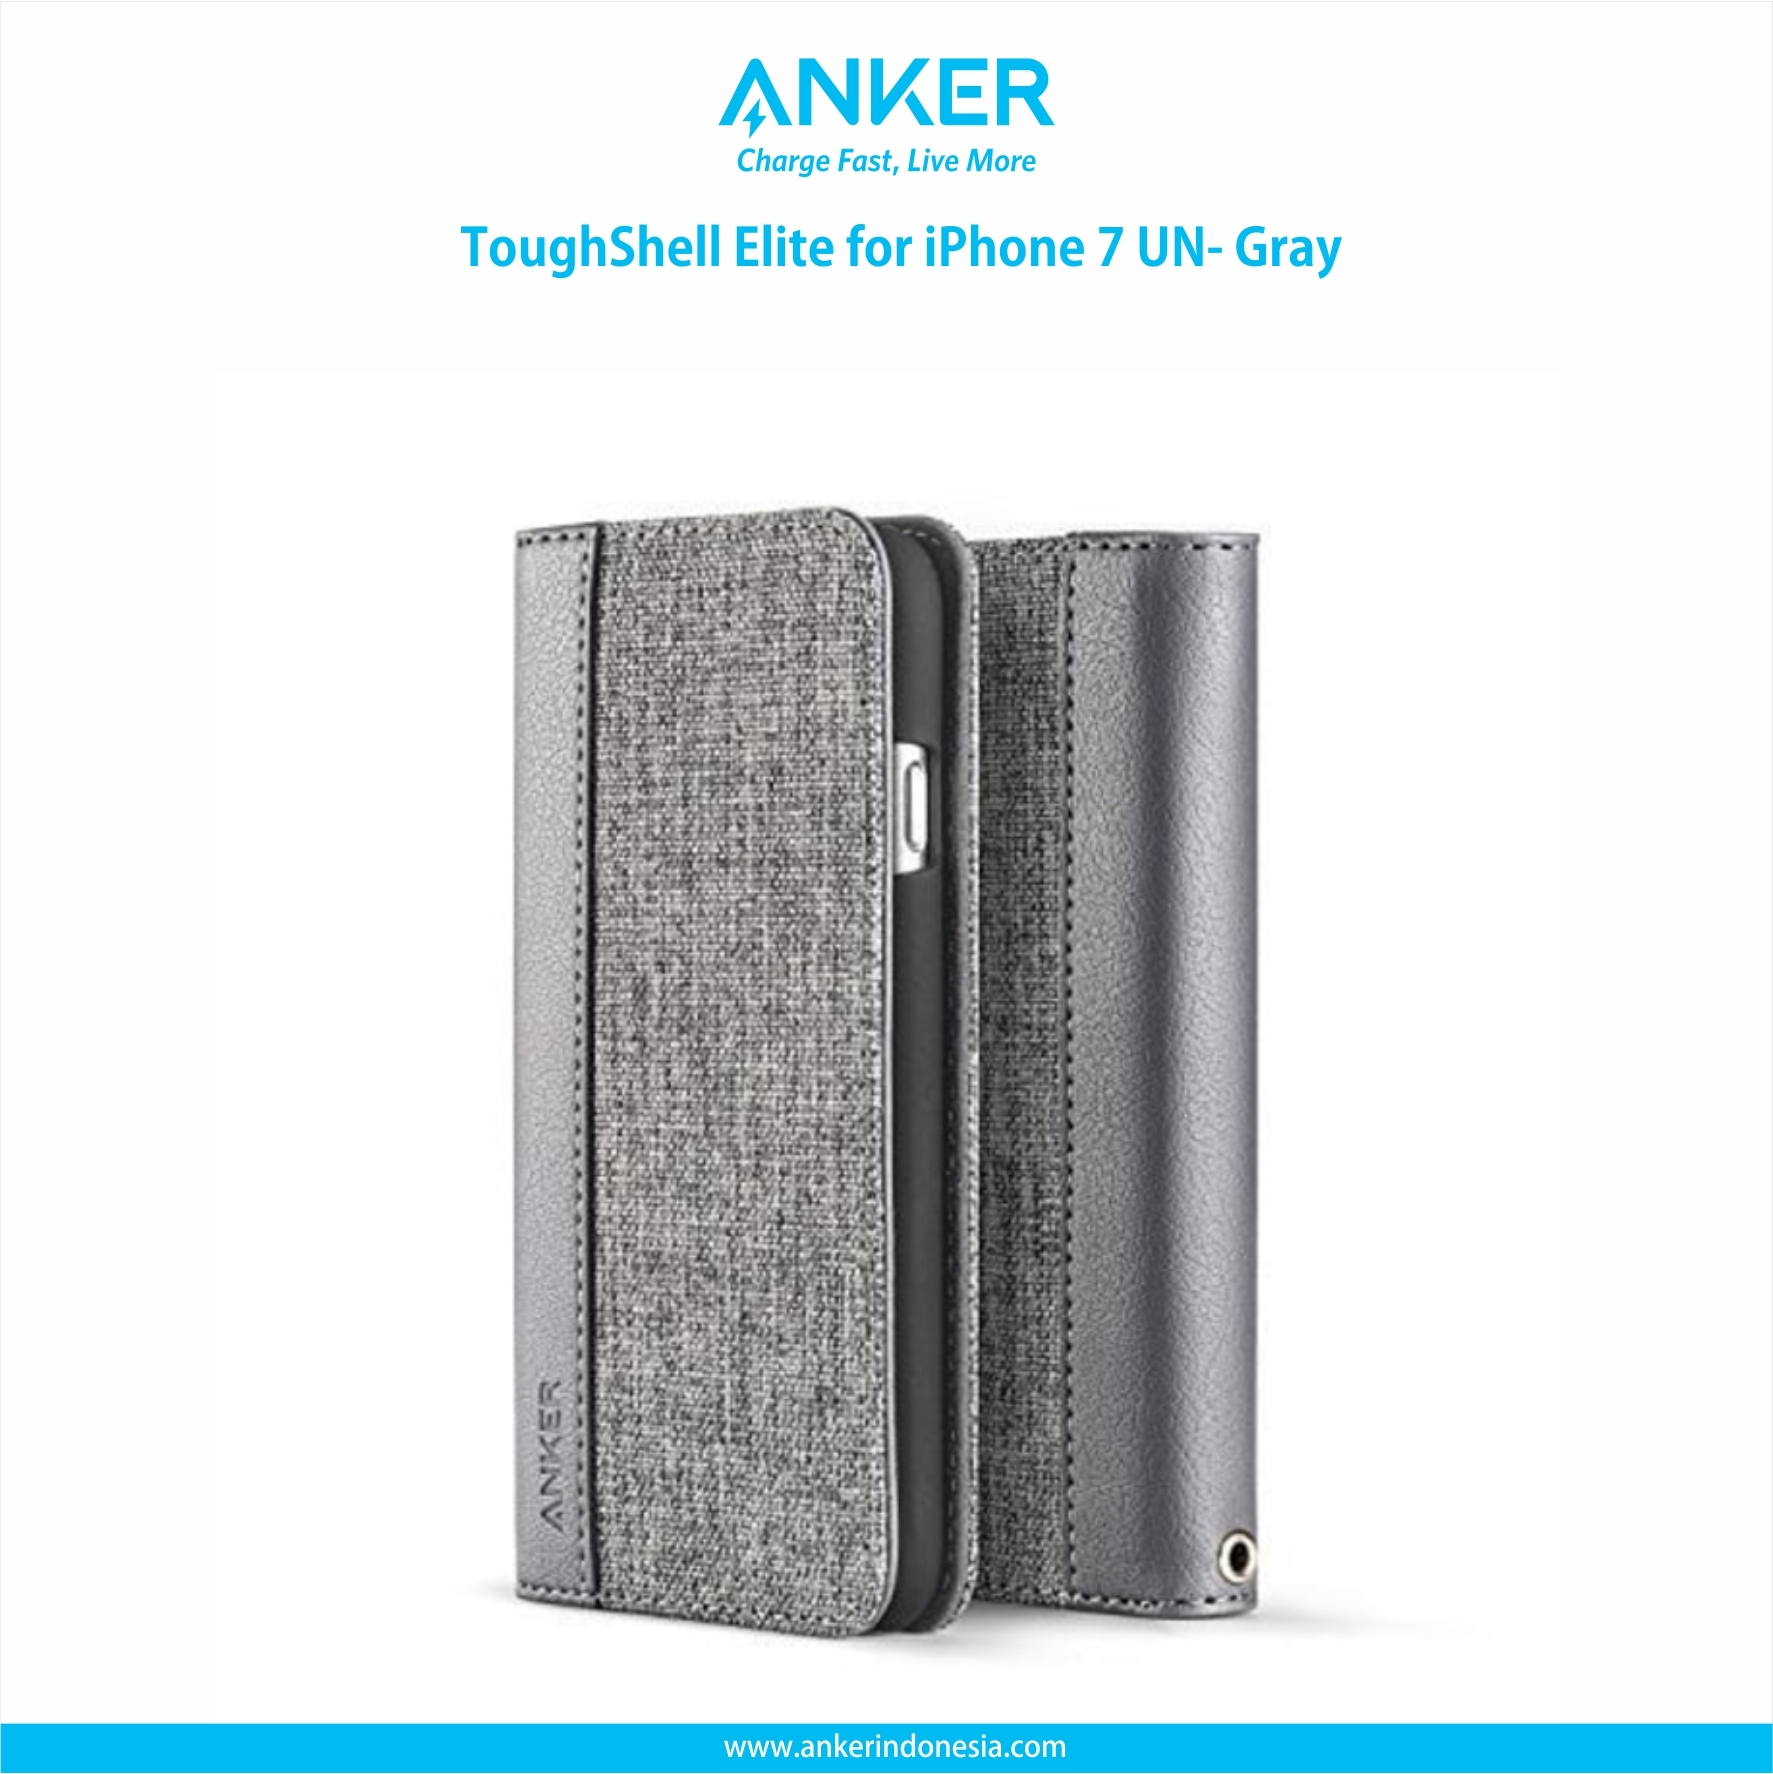 Promo Jual Anker Powerbank Aksesoris Gadget Tcash Vaganza 17 Fashion Blouse Atasan Toughshell Elite For Iphone 7 Un Gray A70600a1